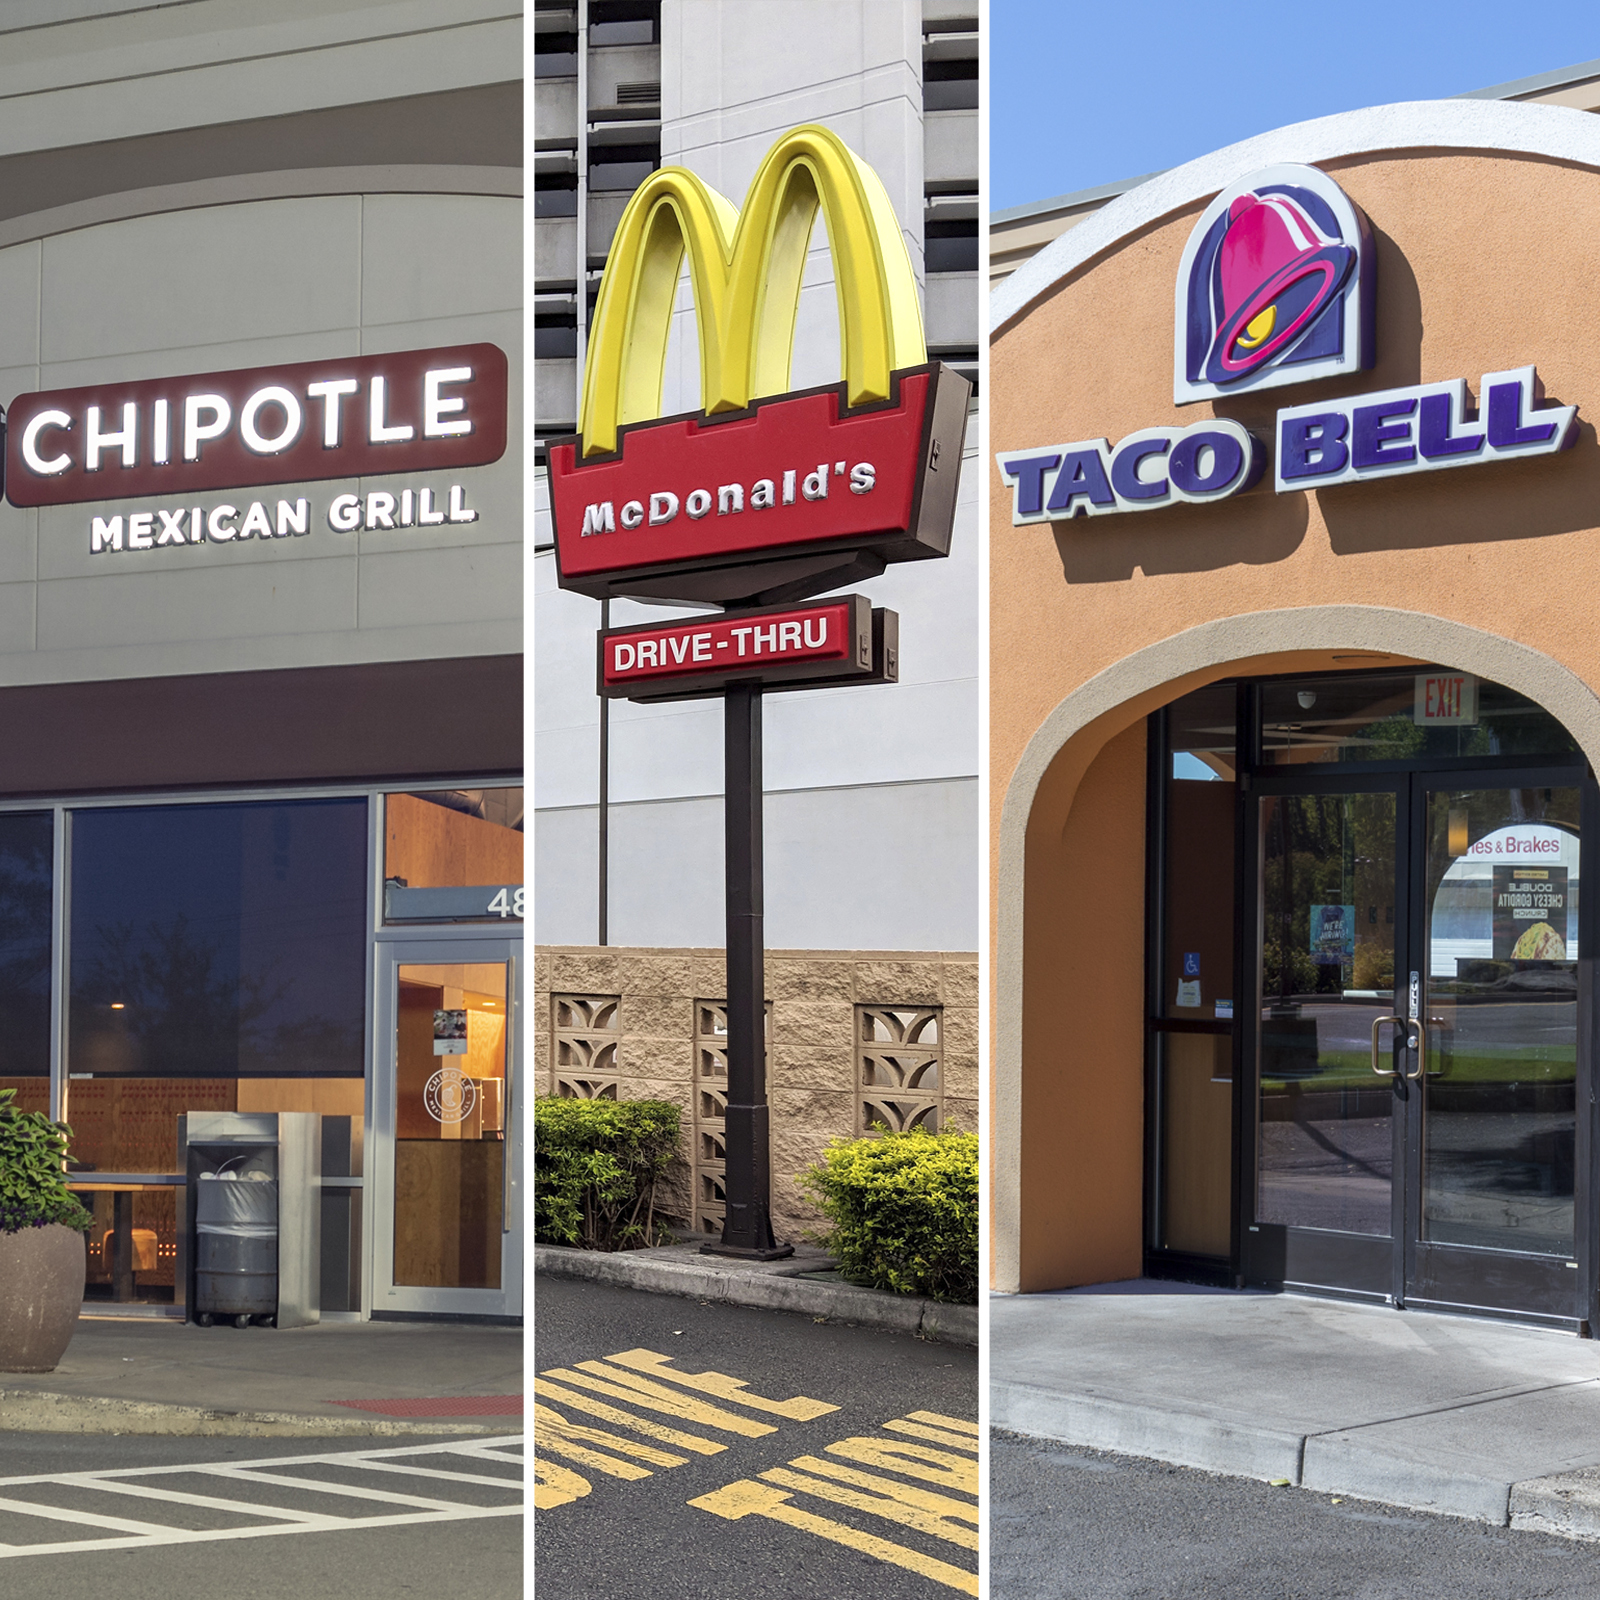 Chipotle; McDonald's and Taco Bell